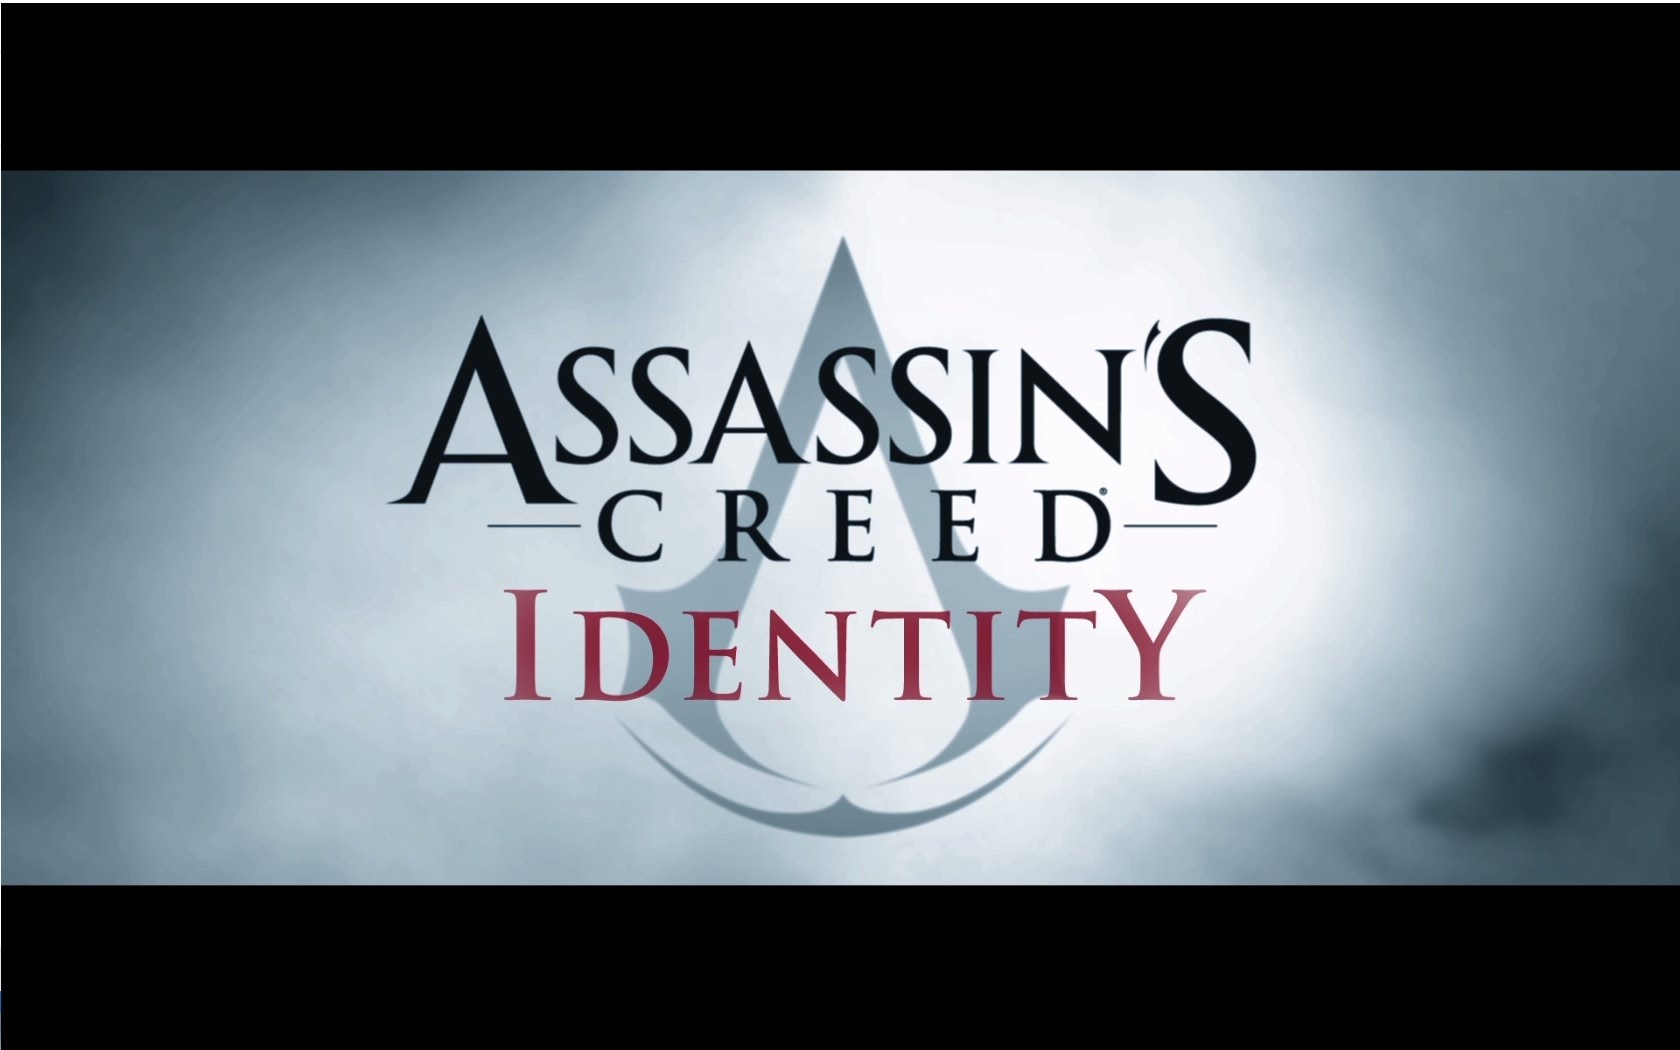 Assassin's Creed Identity - Announcement Trailer